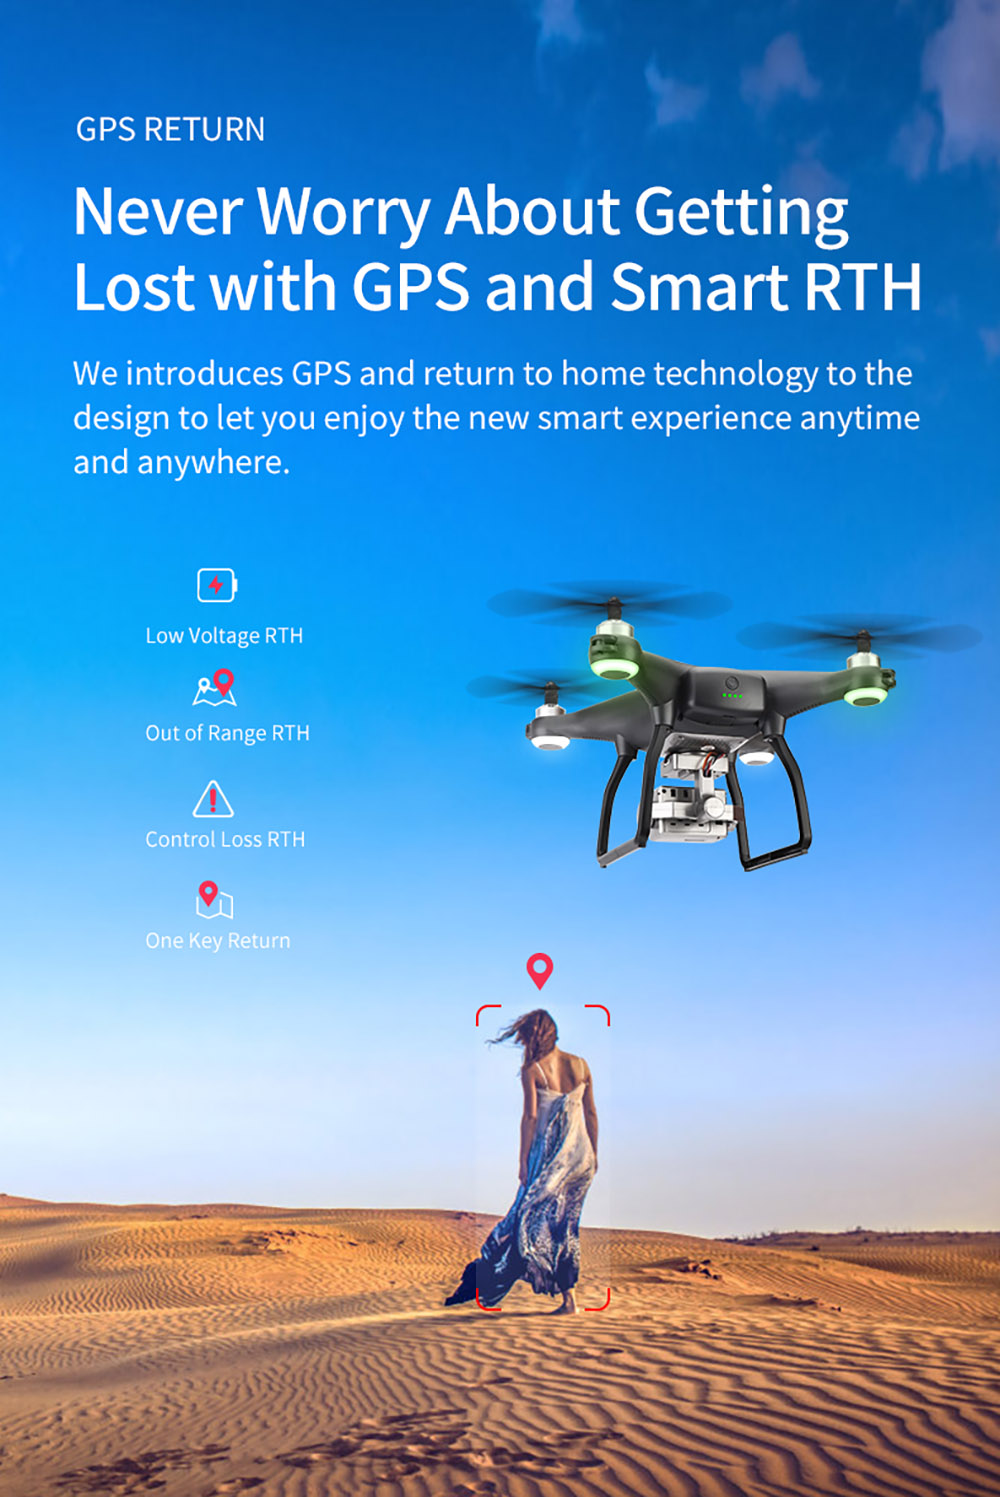 JJRC X13 5G GPS WiFi FPV RC Drone Dual Mode Positioning Brushless Motor Gimbal Stabilizer with 4K HD Camera Profissional RC Quadcopter - Black